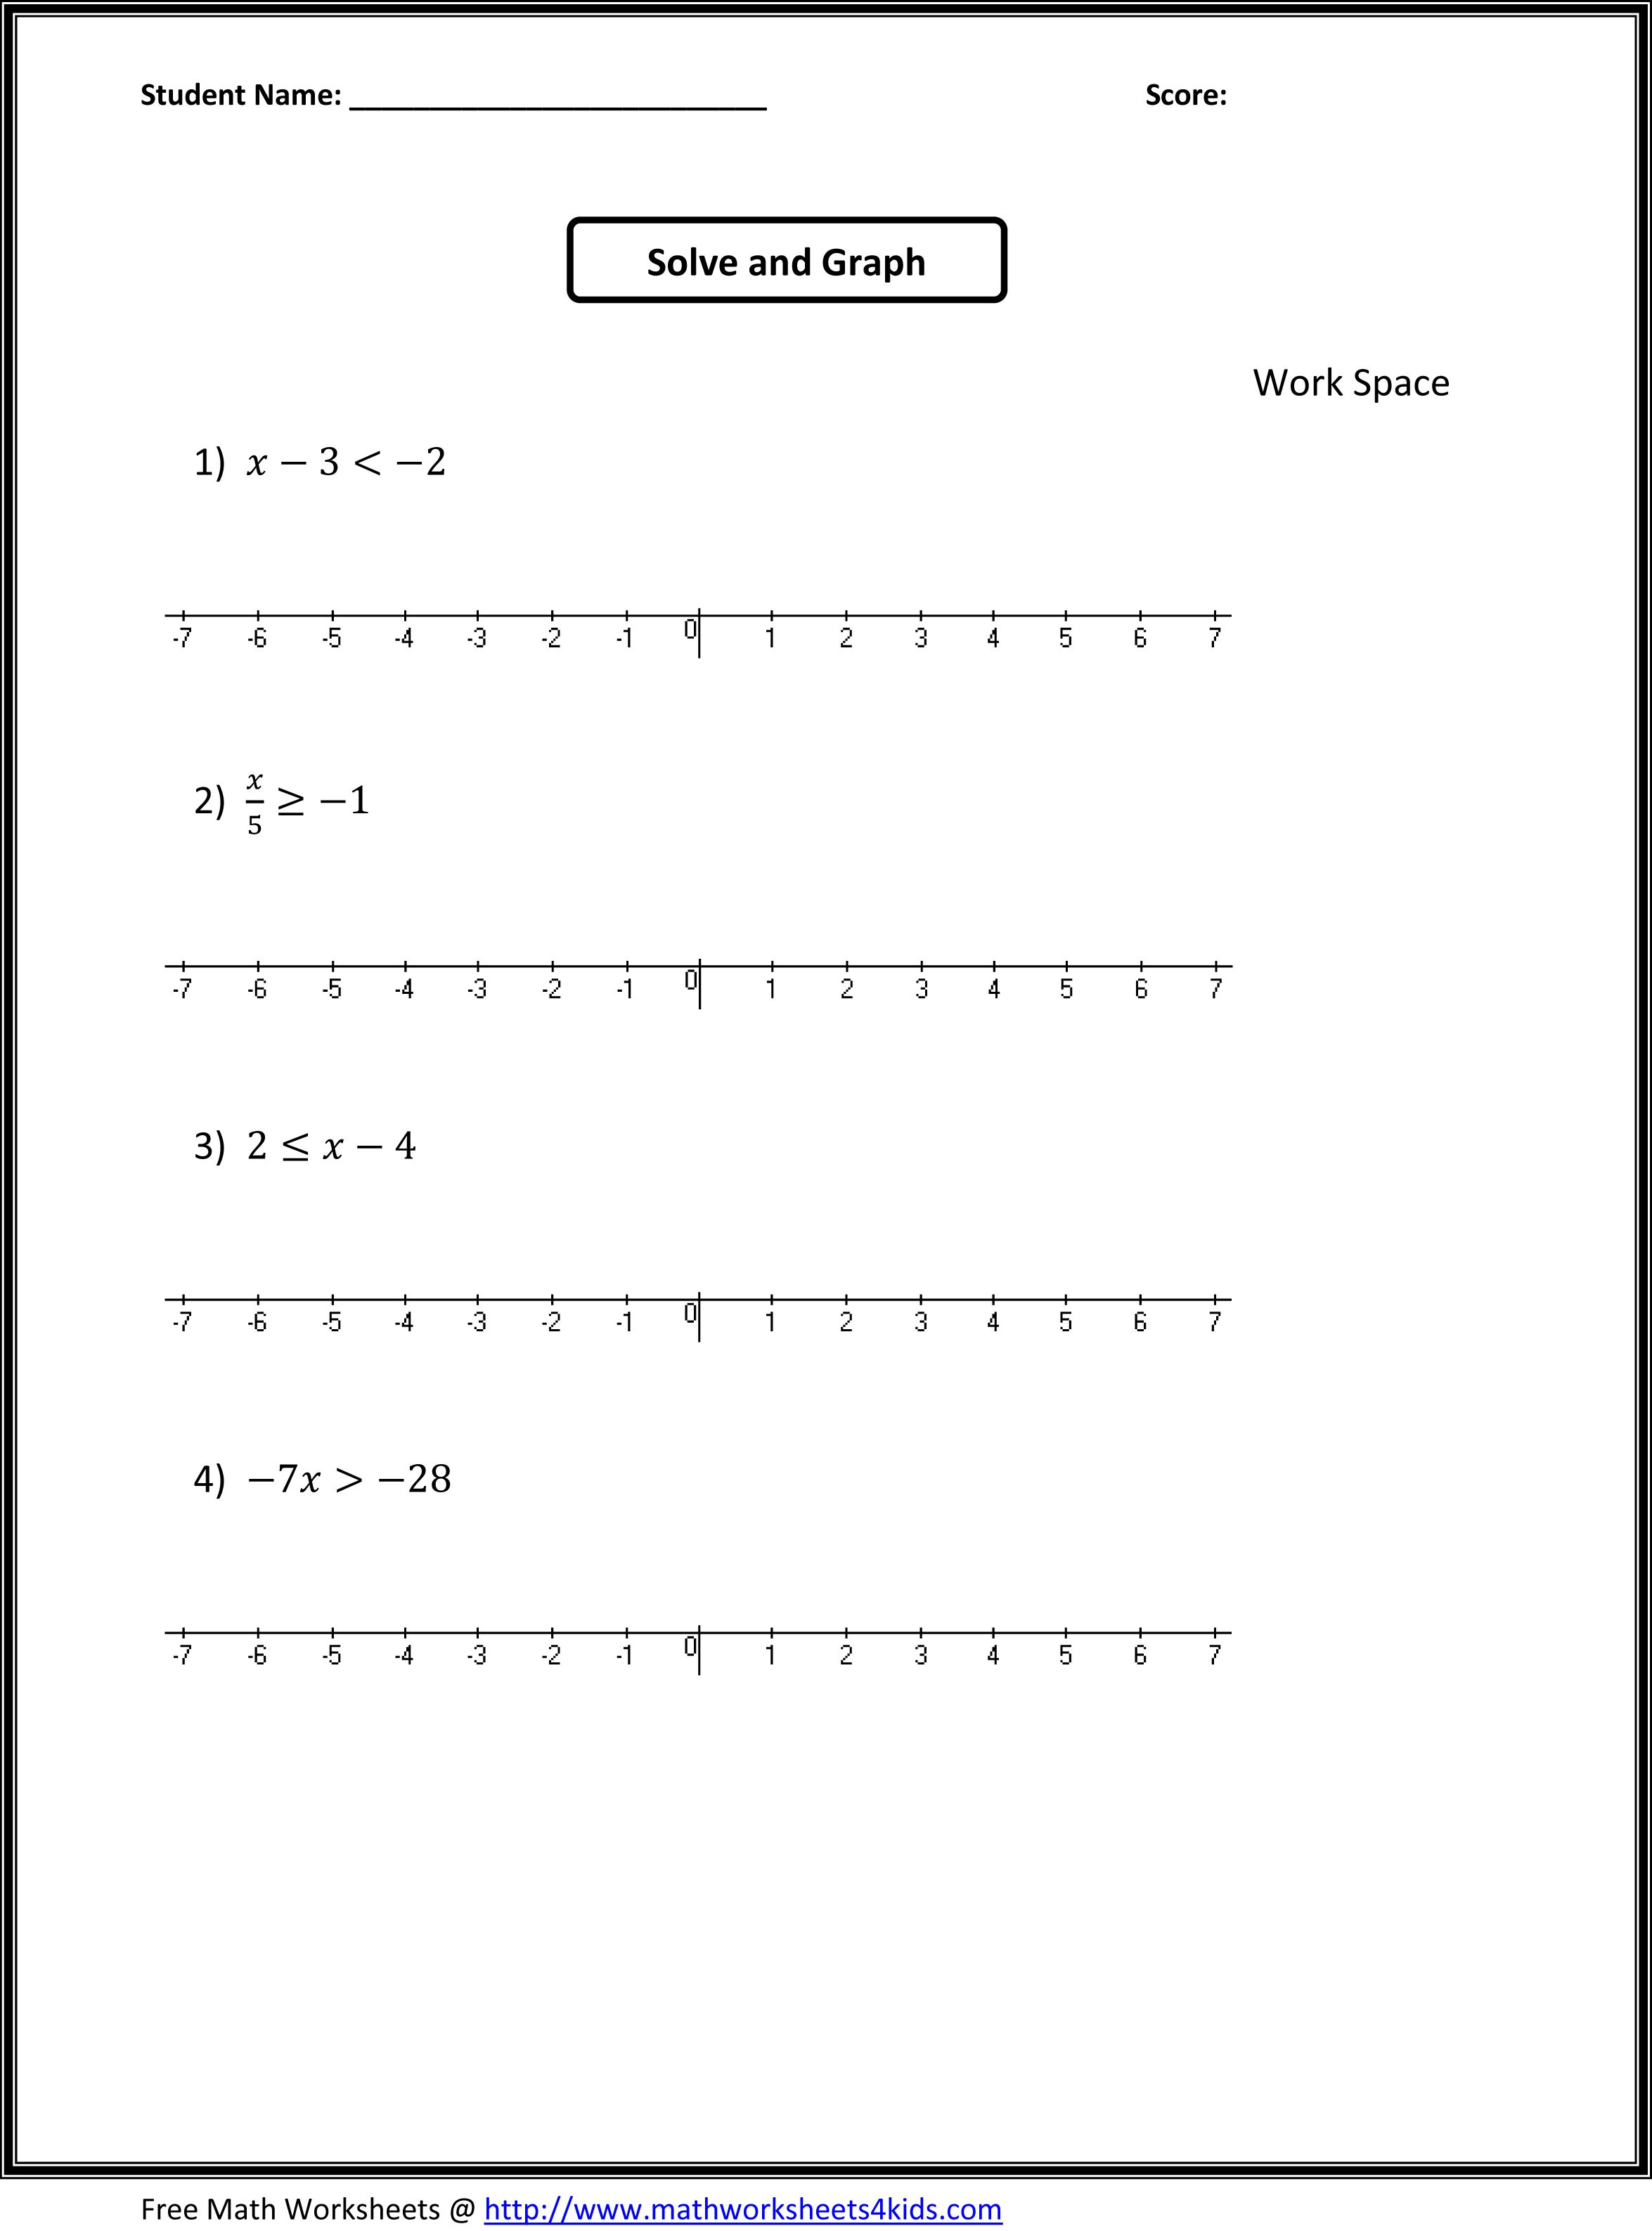 Uncategorized Free Math Worksheets For 8th Grade 7th grade algebra worksheets math places math